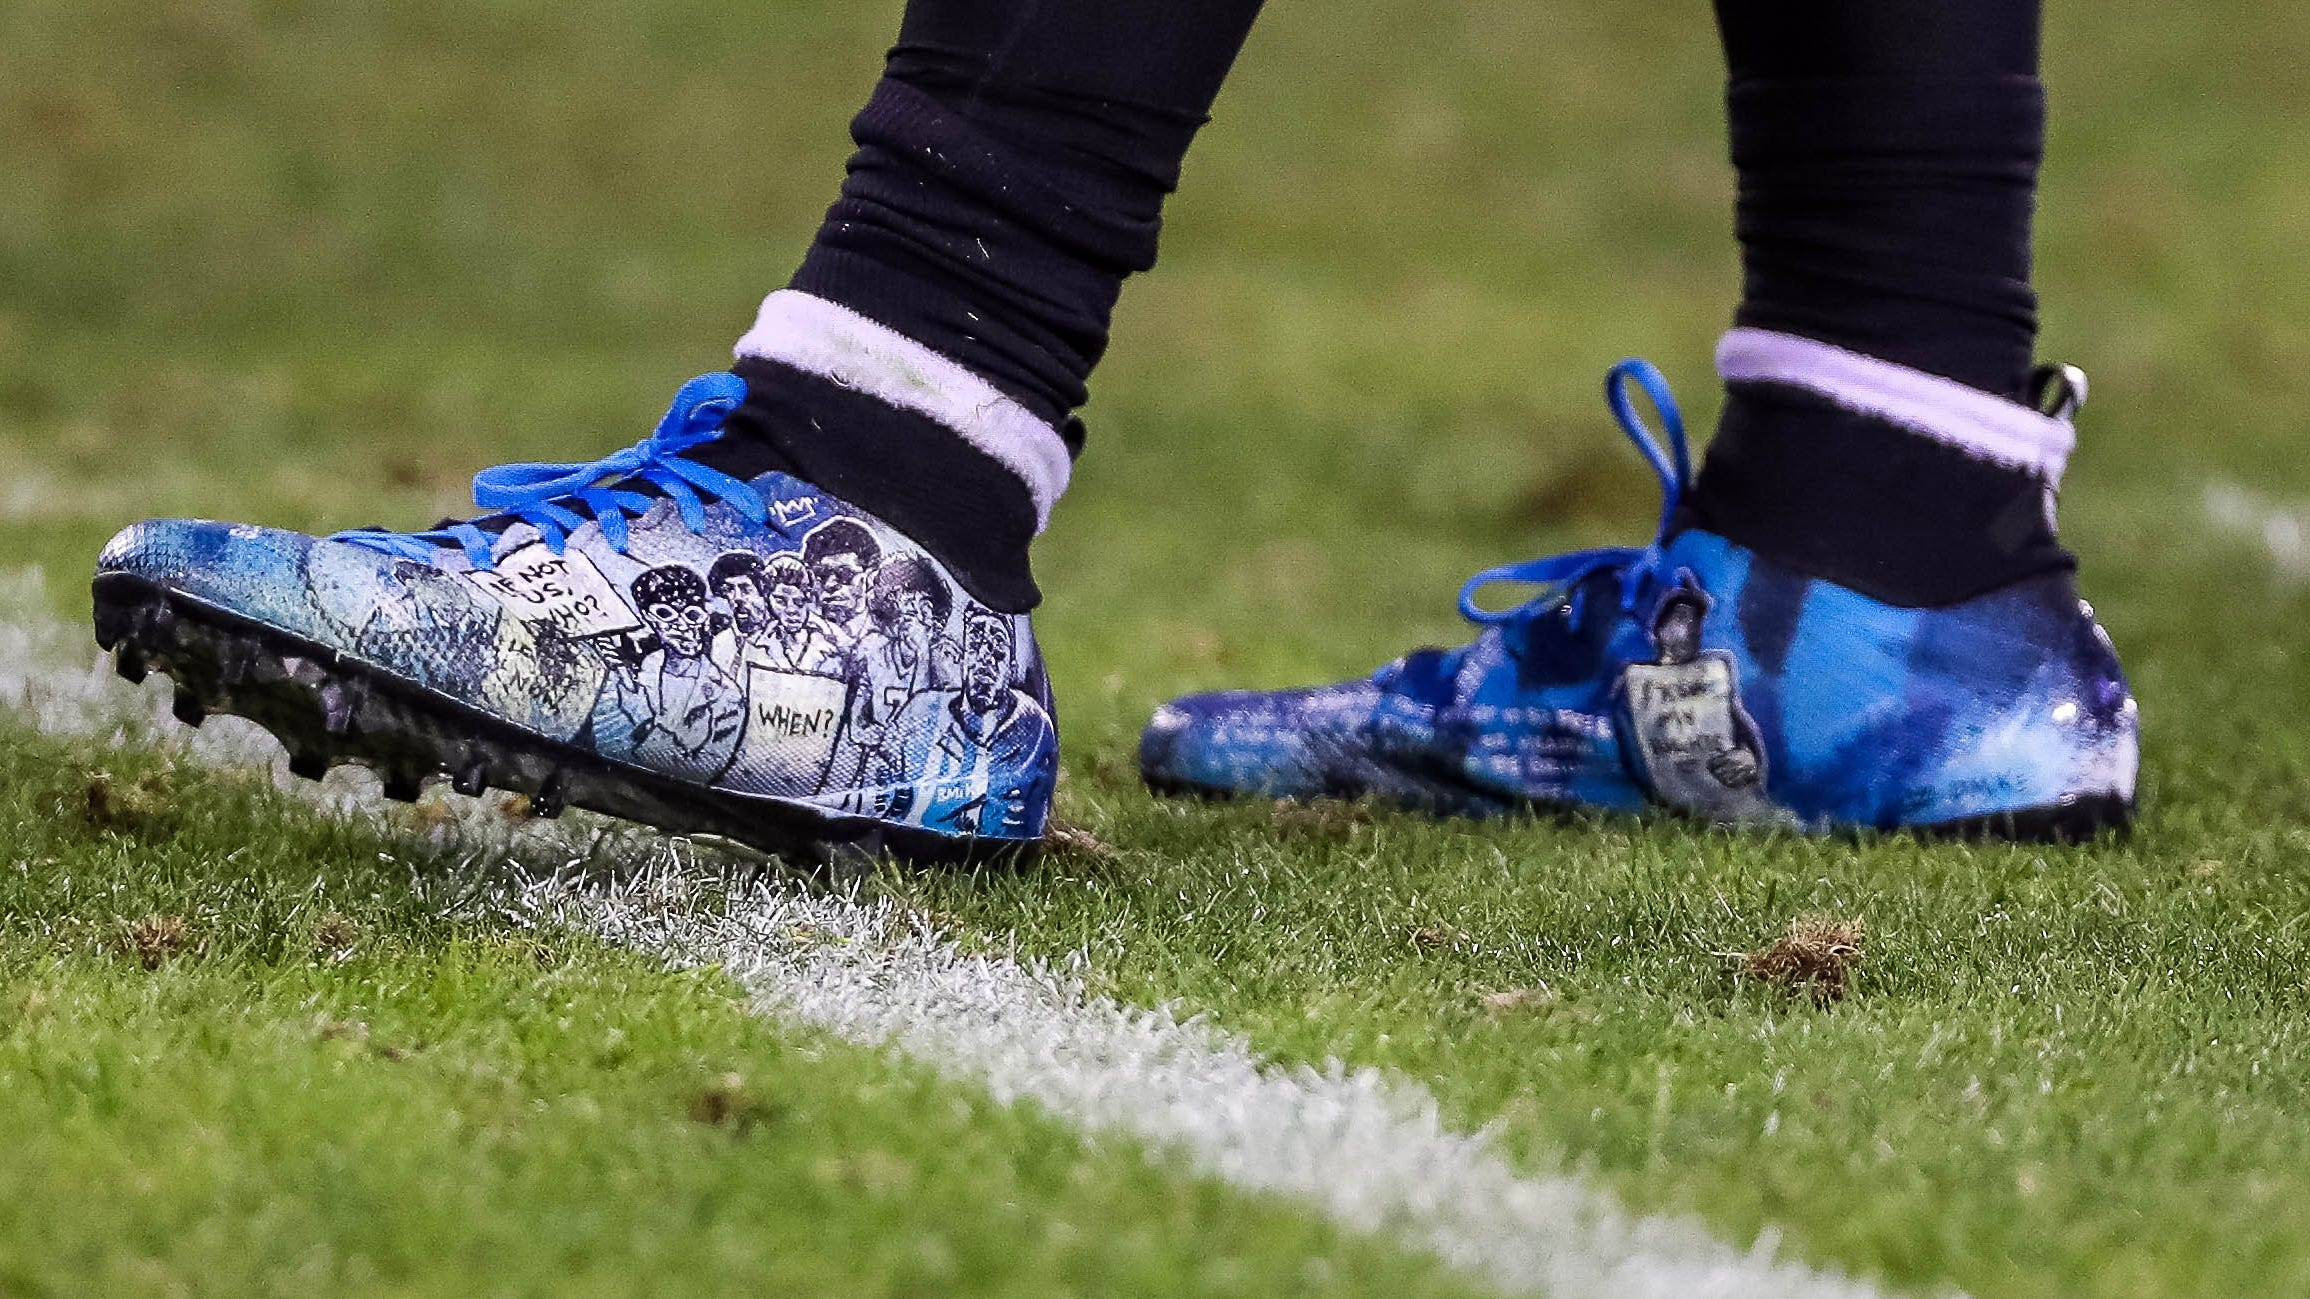 The Panthers' Eric Reid, who had knelt alongside Colin Kaepernick, had artwork of the former 49ers quarterback and other protesters on his cleats.